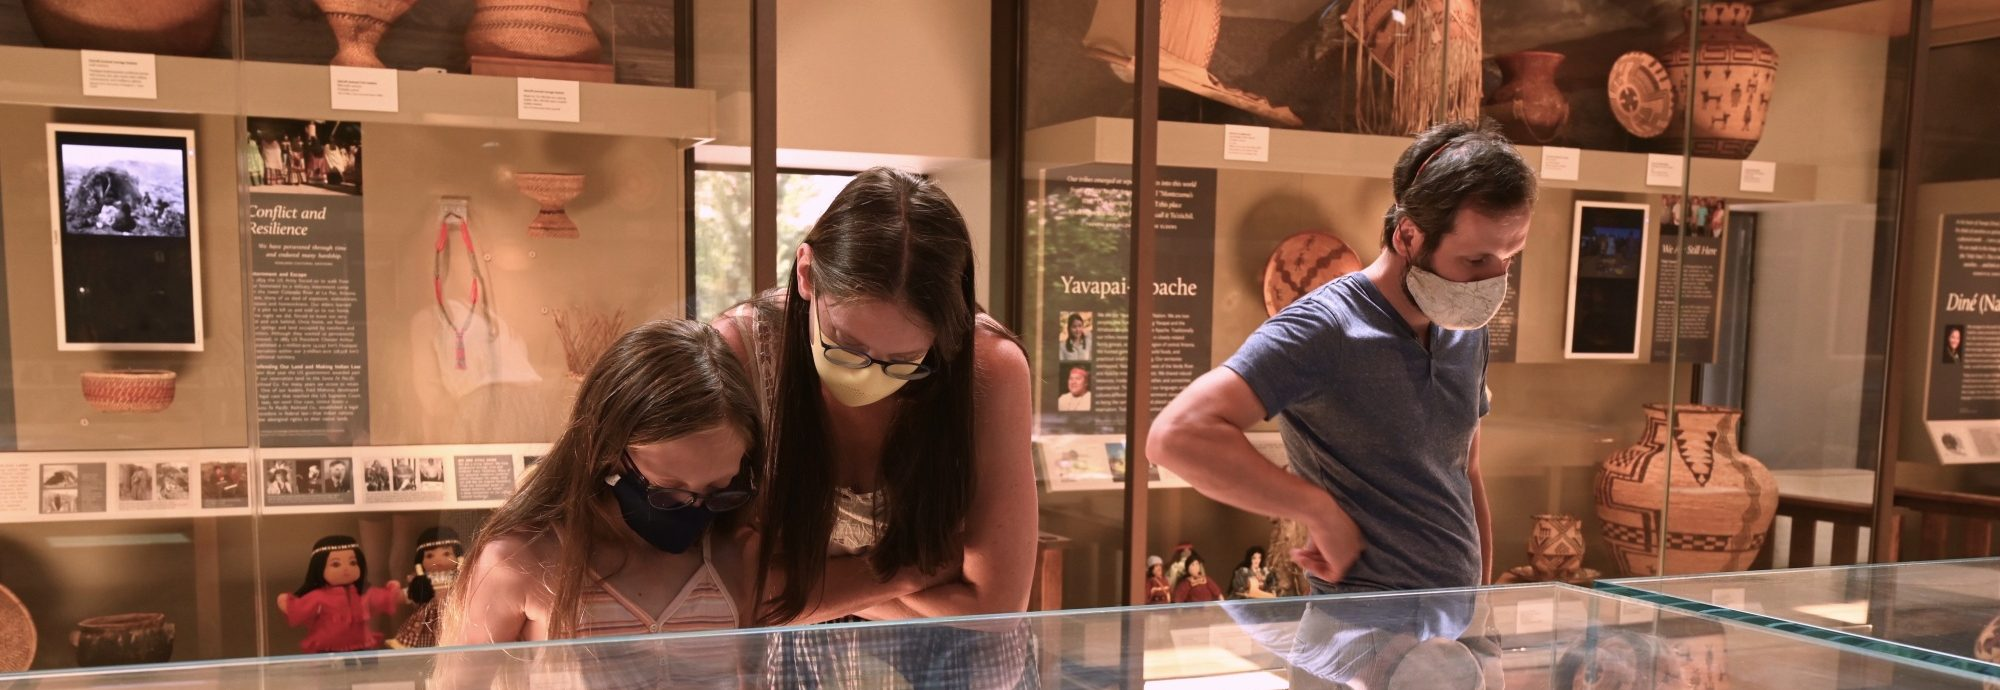 A family looking at a display case